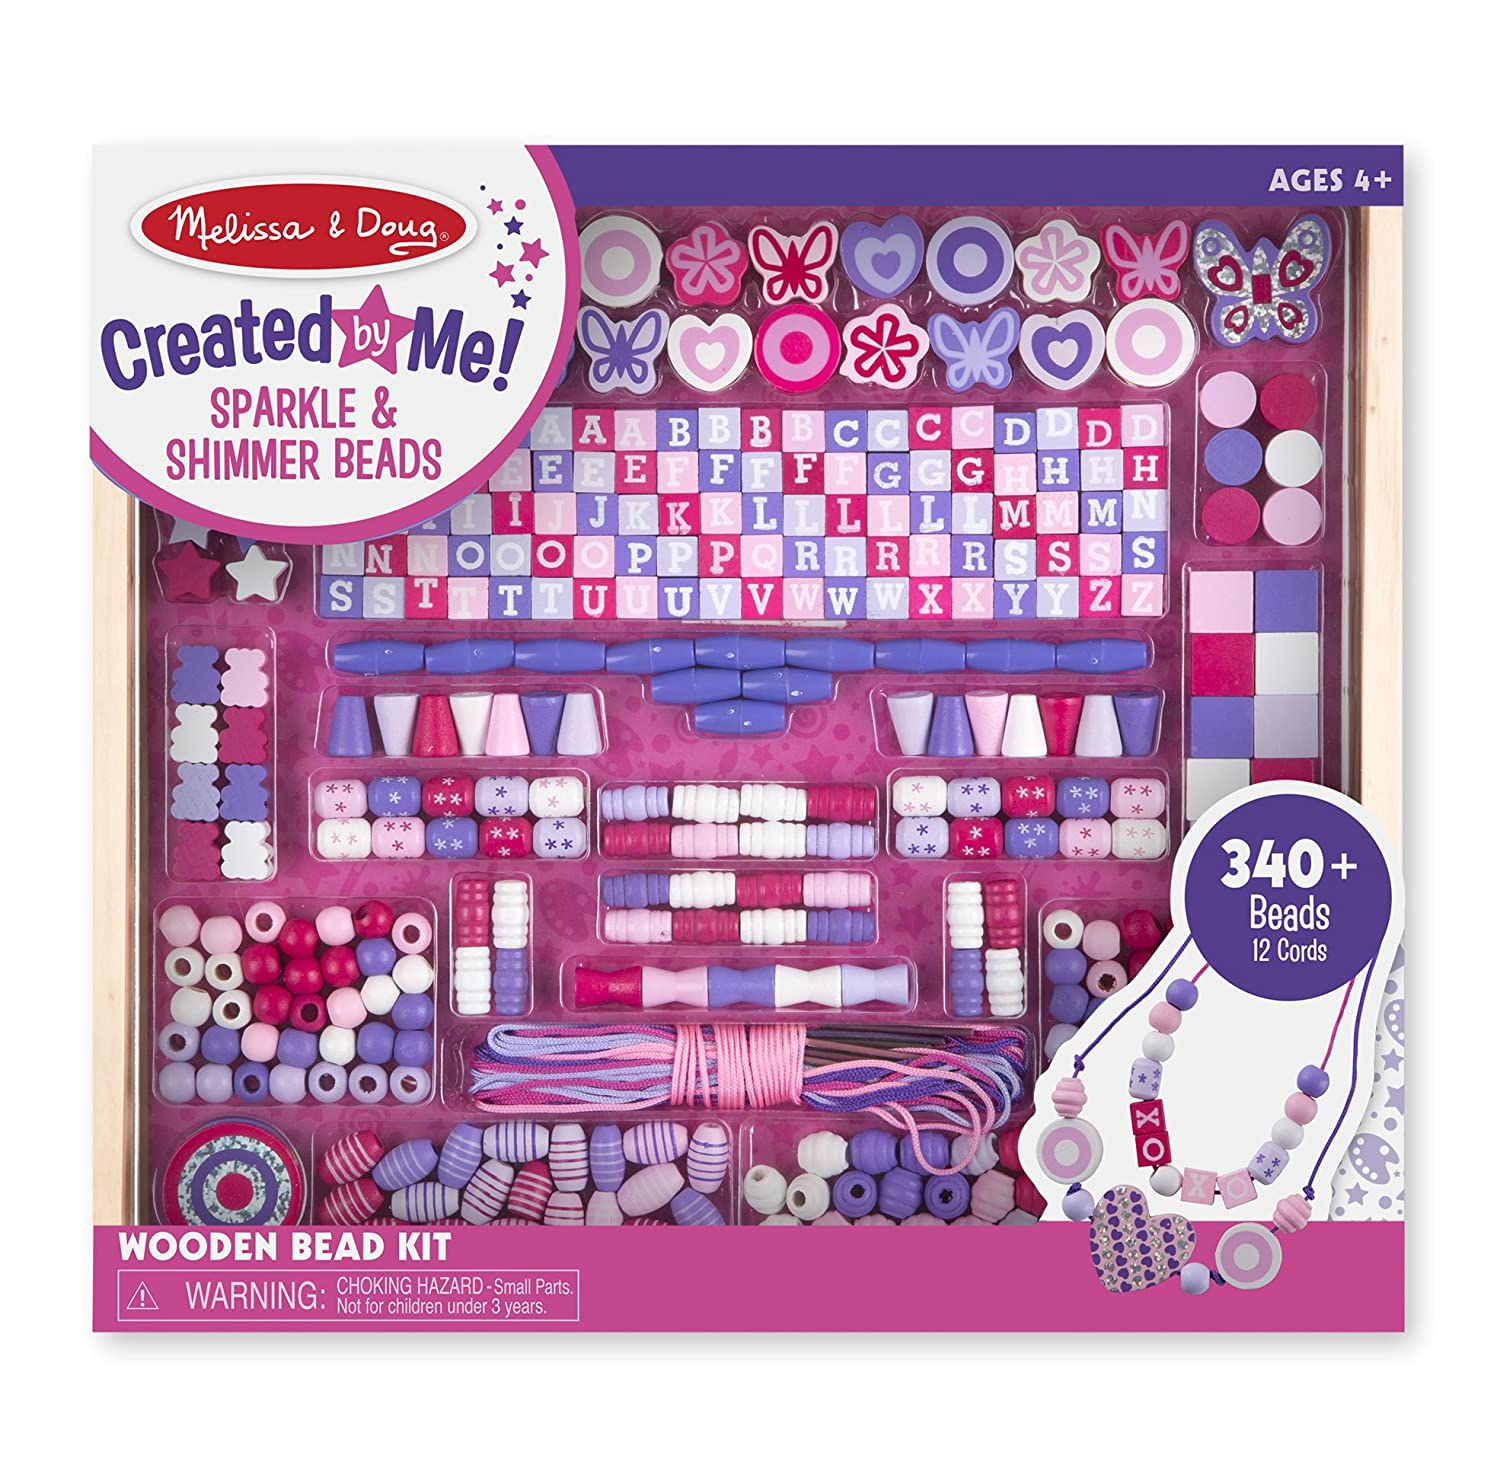 Melissa & Doug Deluxe Collection Wooden Bead Set With 340+ Beads for Jewelry-Making 9493